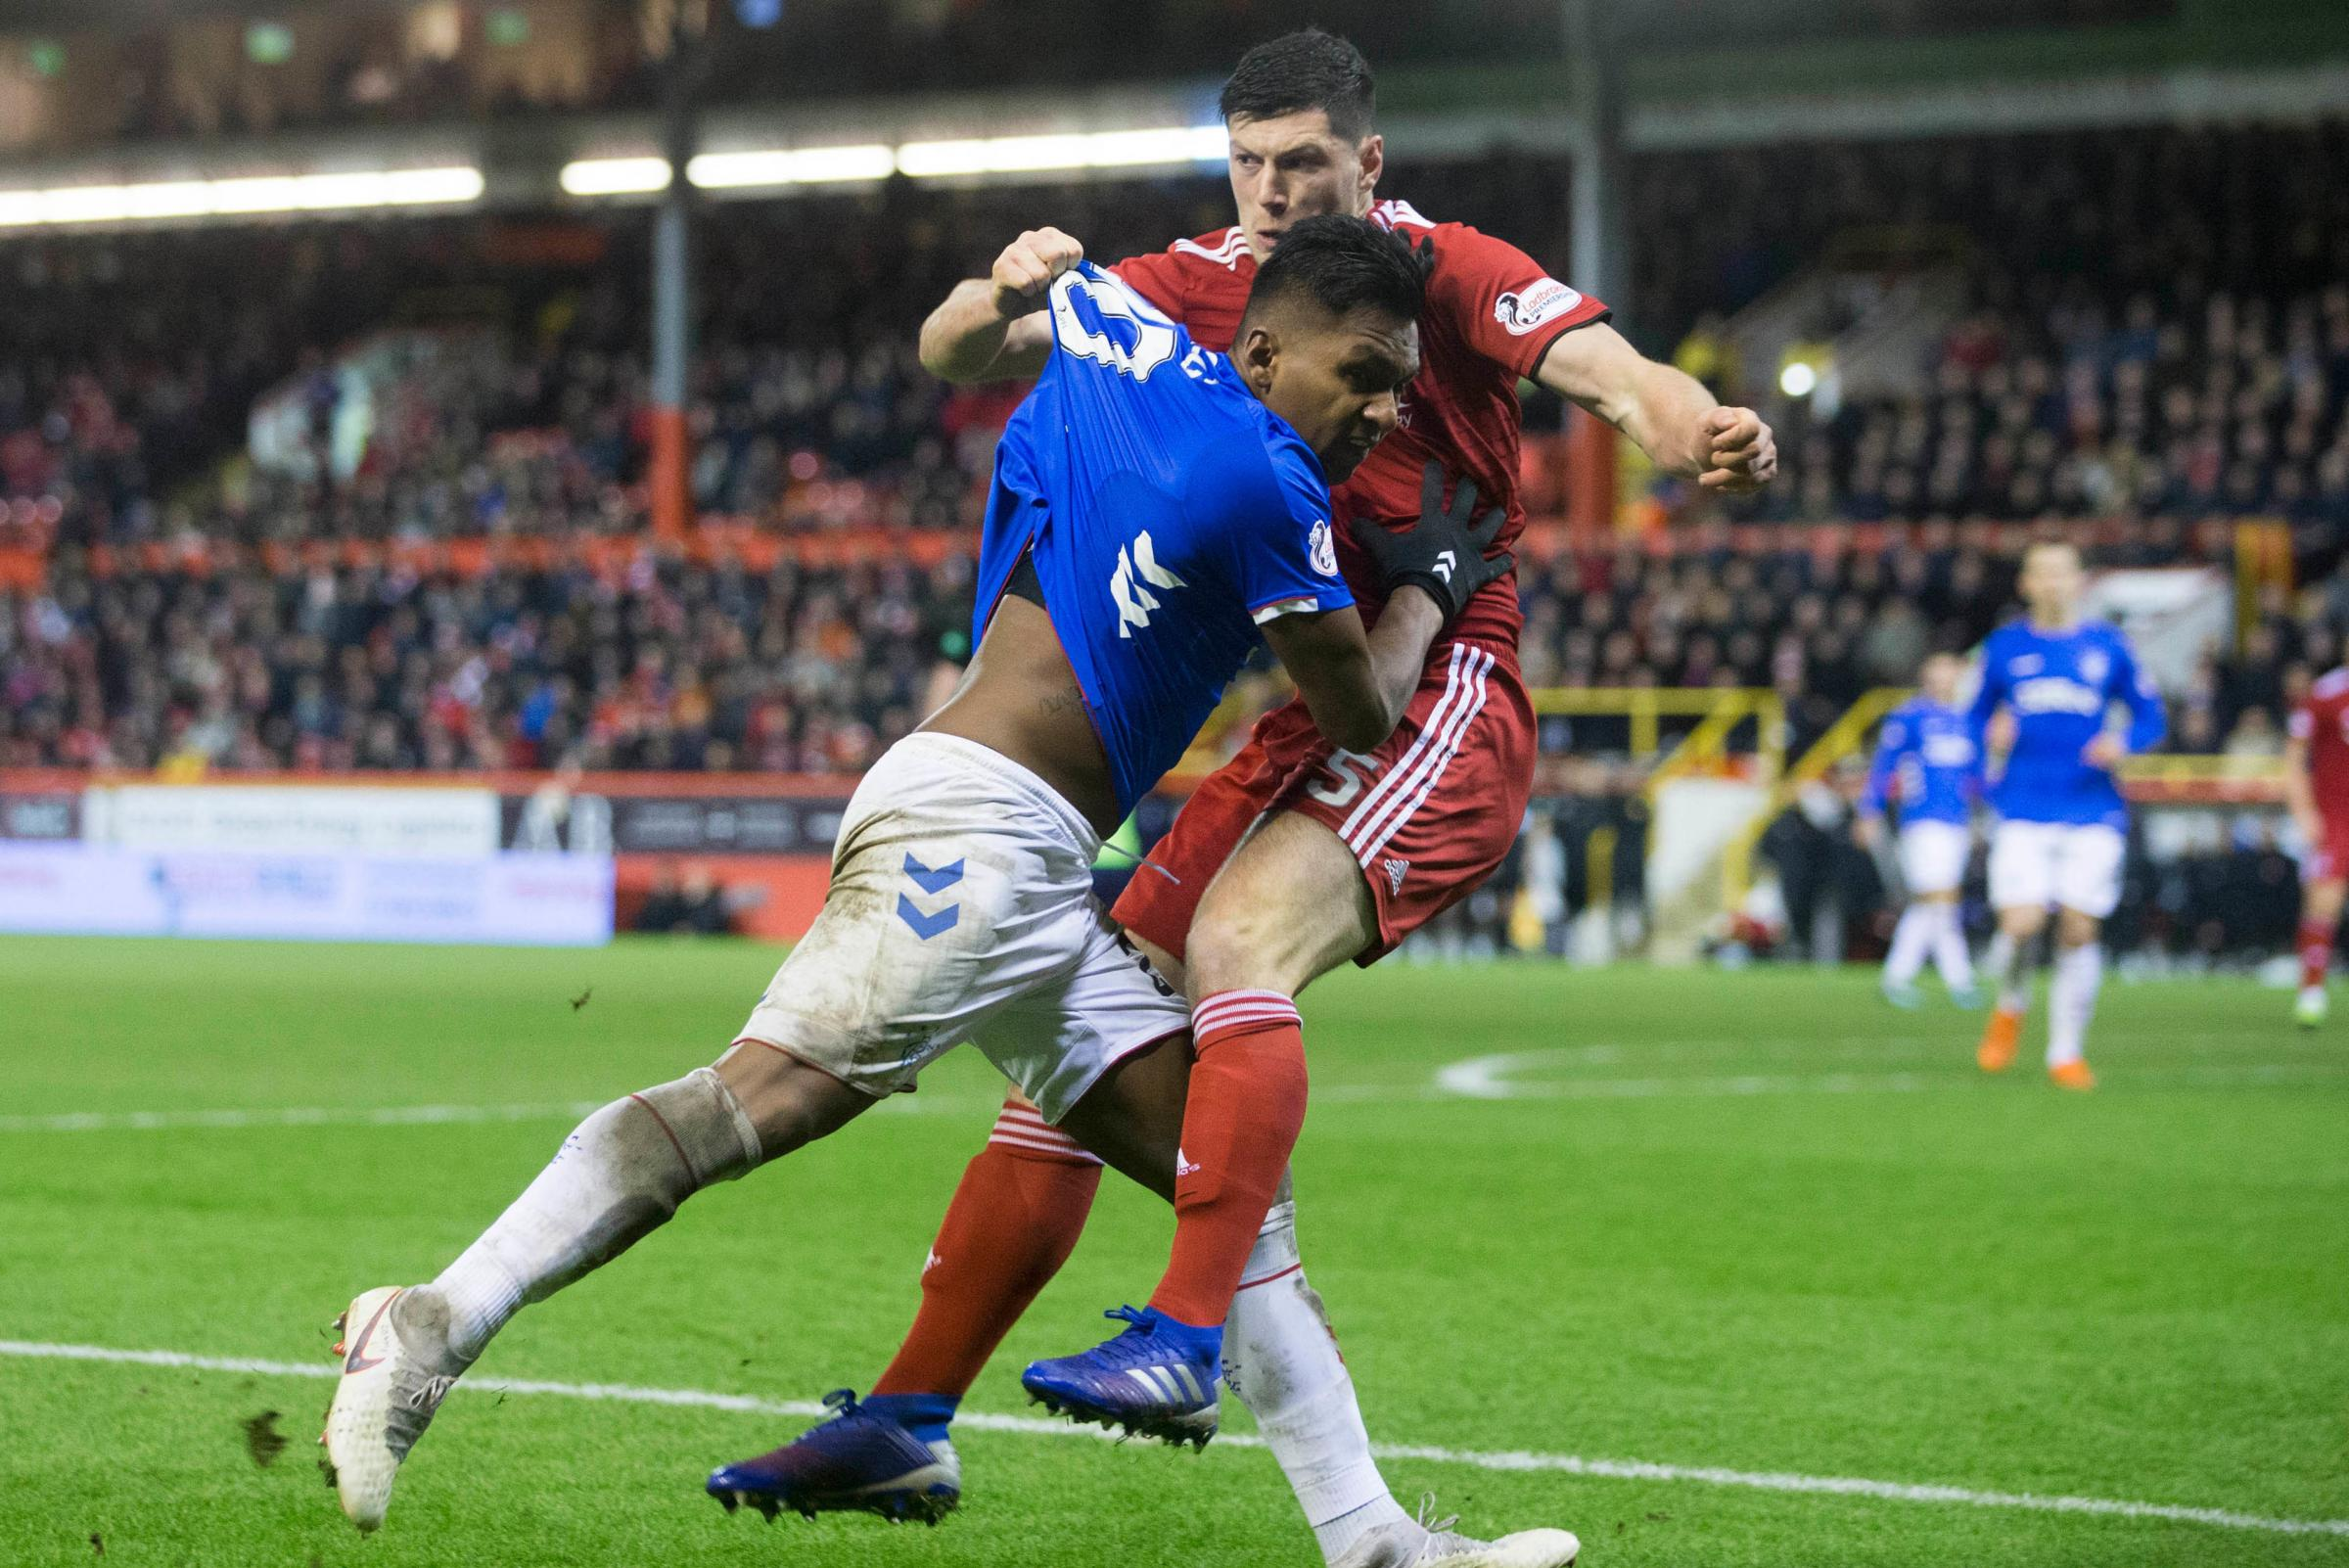 Willie Johnston: Colin Stein got the s*** kicked out of him and scored goals - Alfredo Morelos must do the same